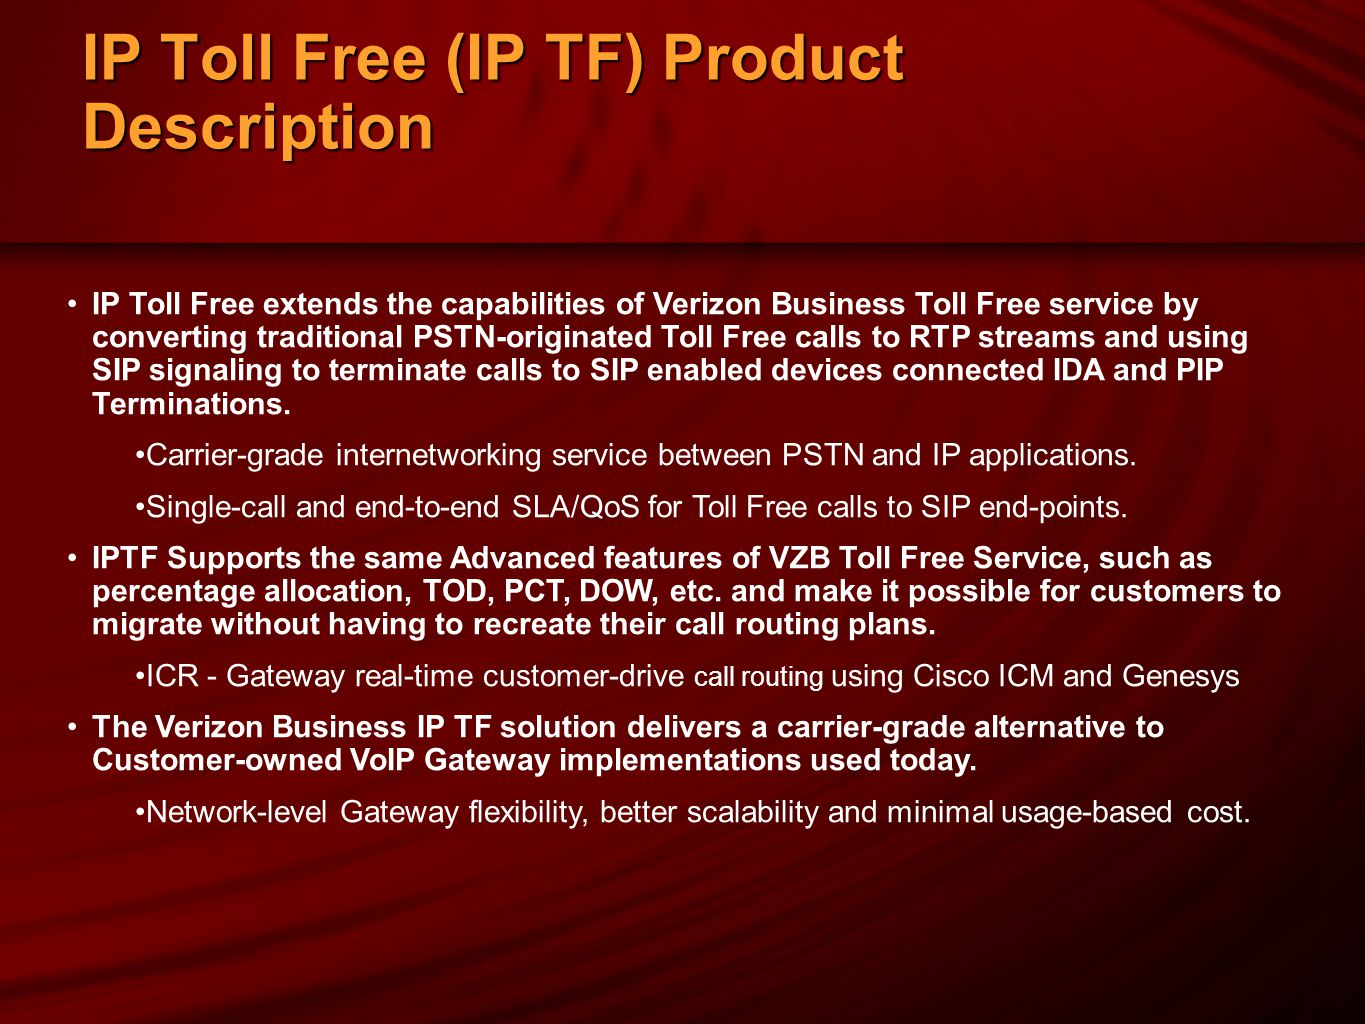 IP Toll Free (IP TF) Product Description IP Toll Free extends the capabilities of Verizon Business Toll Free service by converting traditional PSTN-originated Toll Free calls to RTP streams and using SIP signaling to terminate calls to SIP enabled devices connected IDA and PIP Terminations.